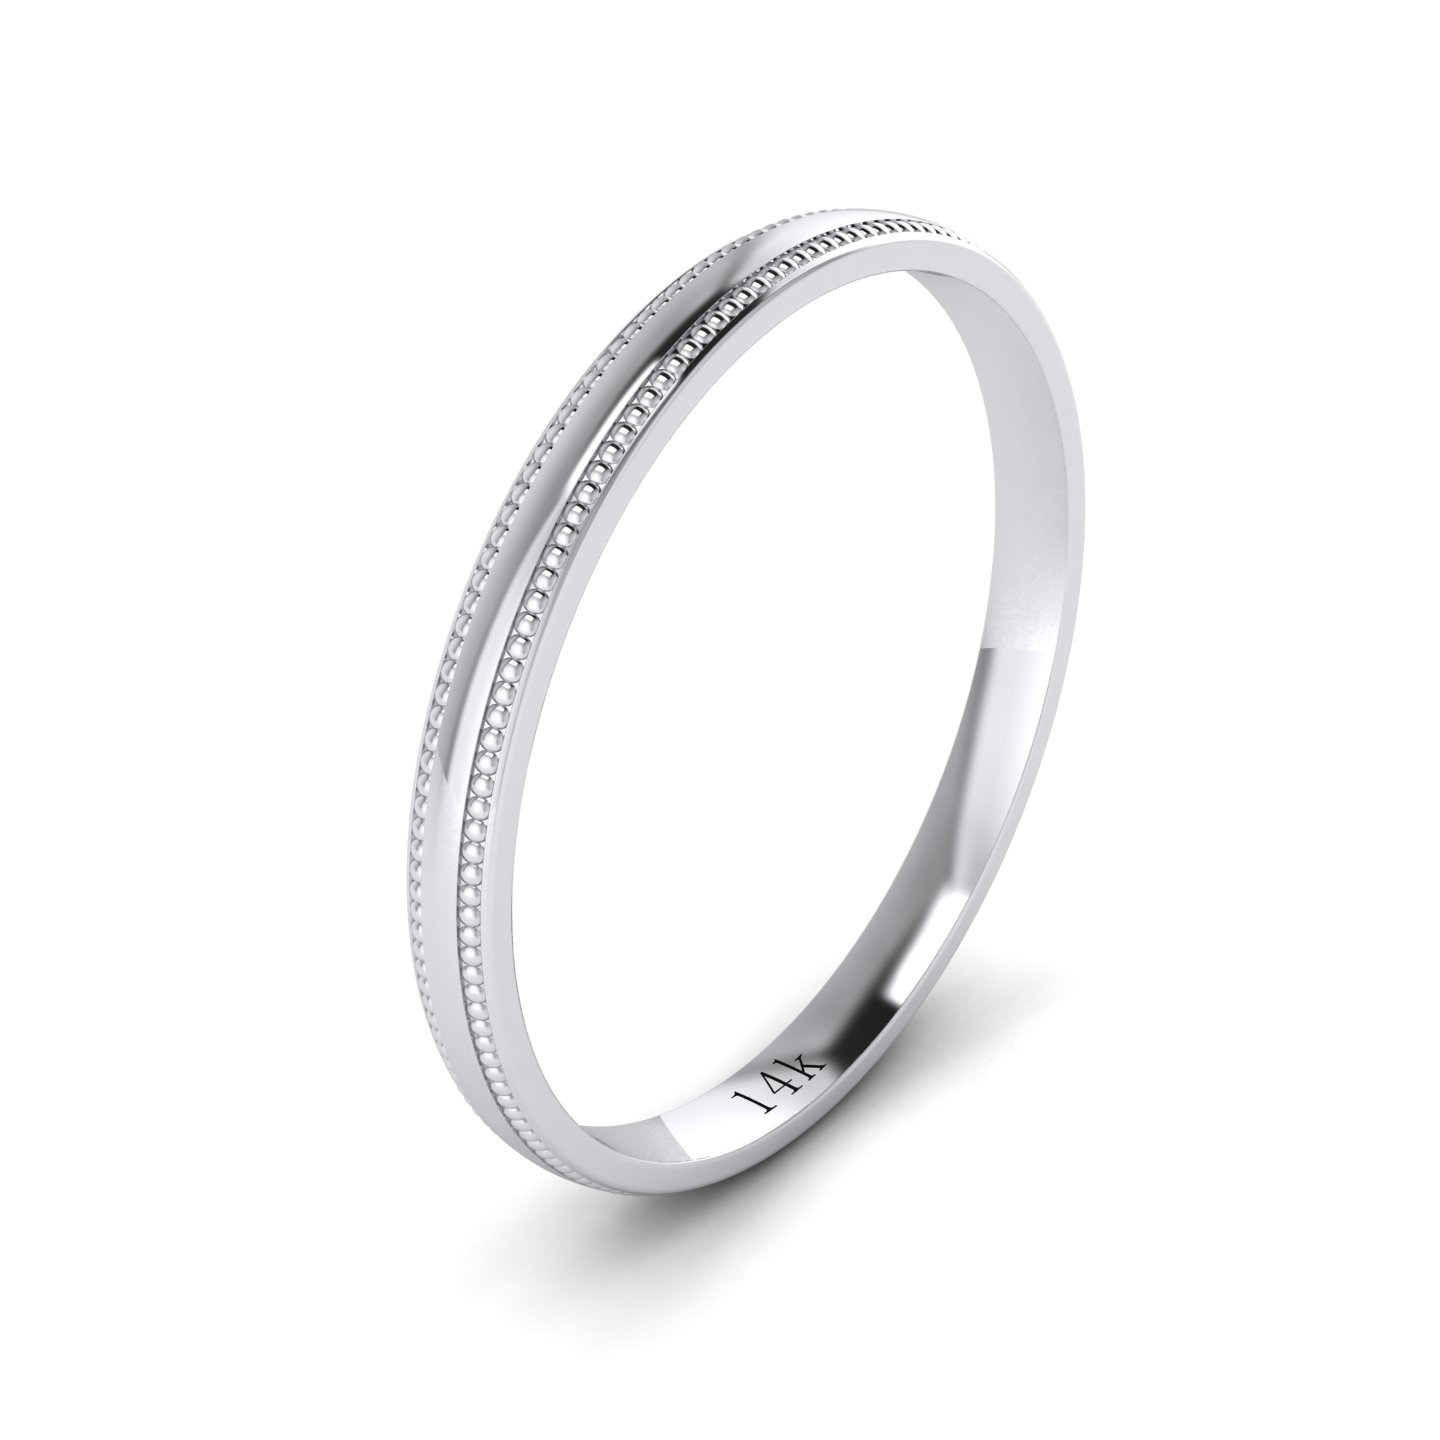 LANDA JEWEL Unisex 14k White Gold 2mm Light Court Shape Comfort Fit Polished Wedding Ring Milgrain Band (6) by LANDA JEWEL (Image #1)